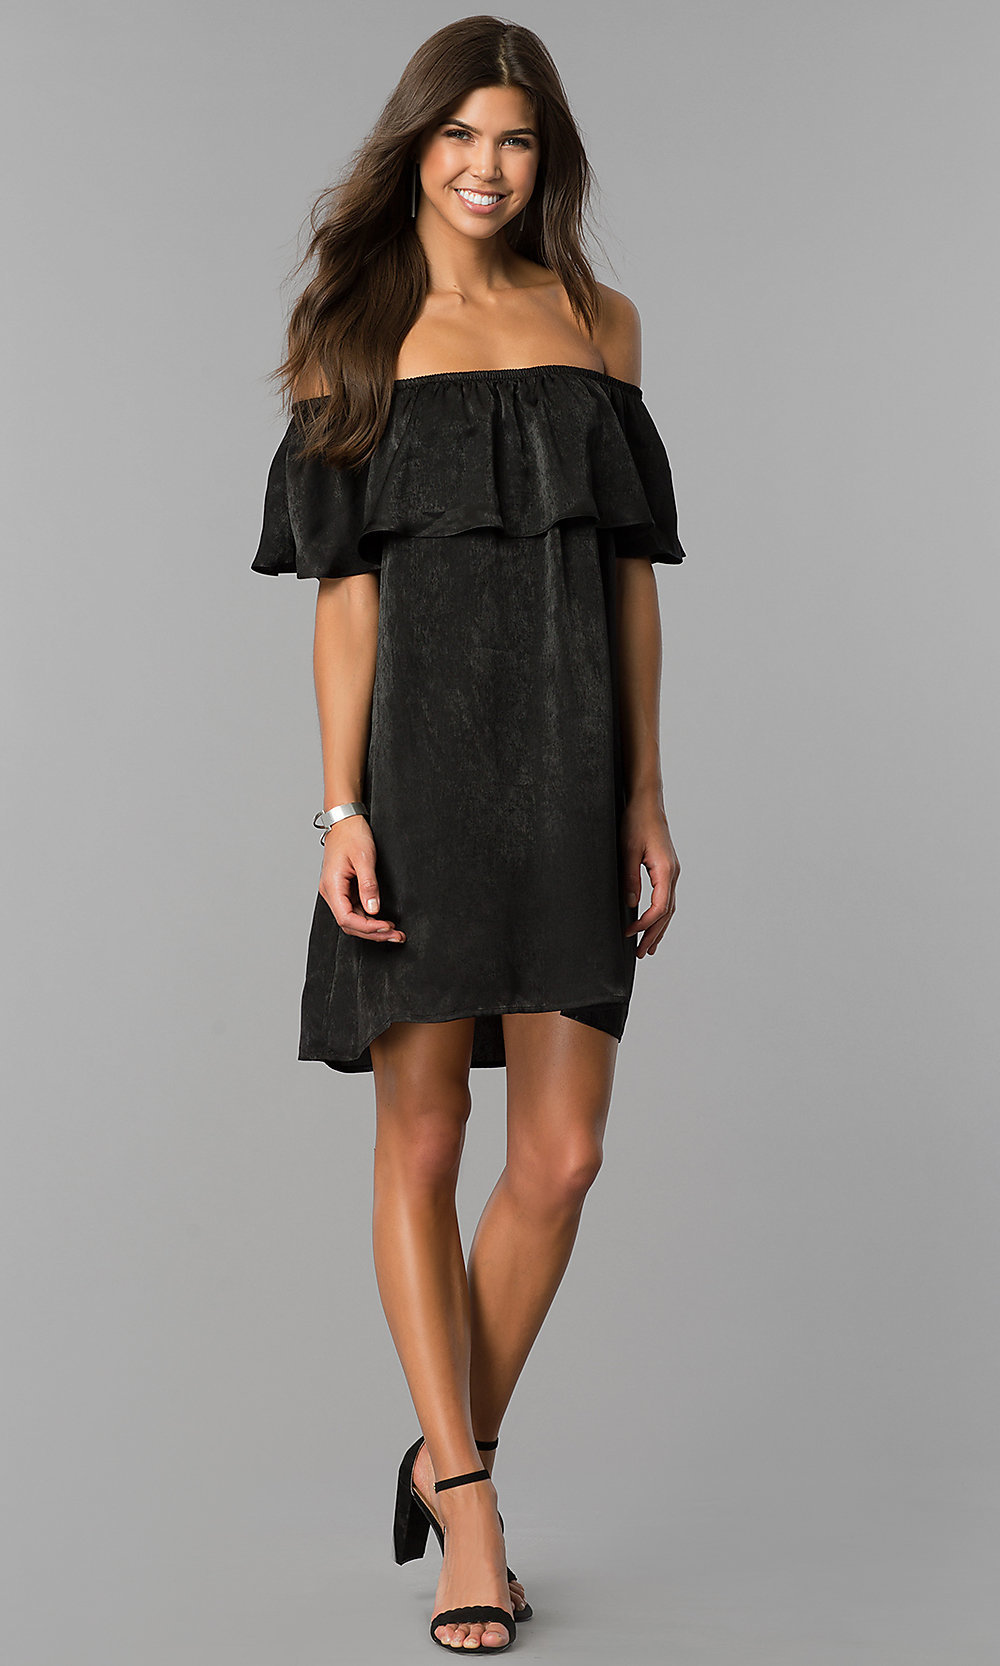 b1a6c3d14dd3 Image of short black party dress with off-the-shoulder ruffle. Style  Tap  to expand